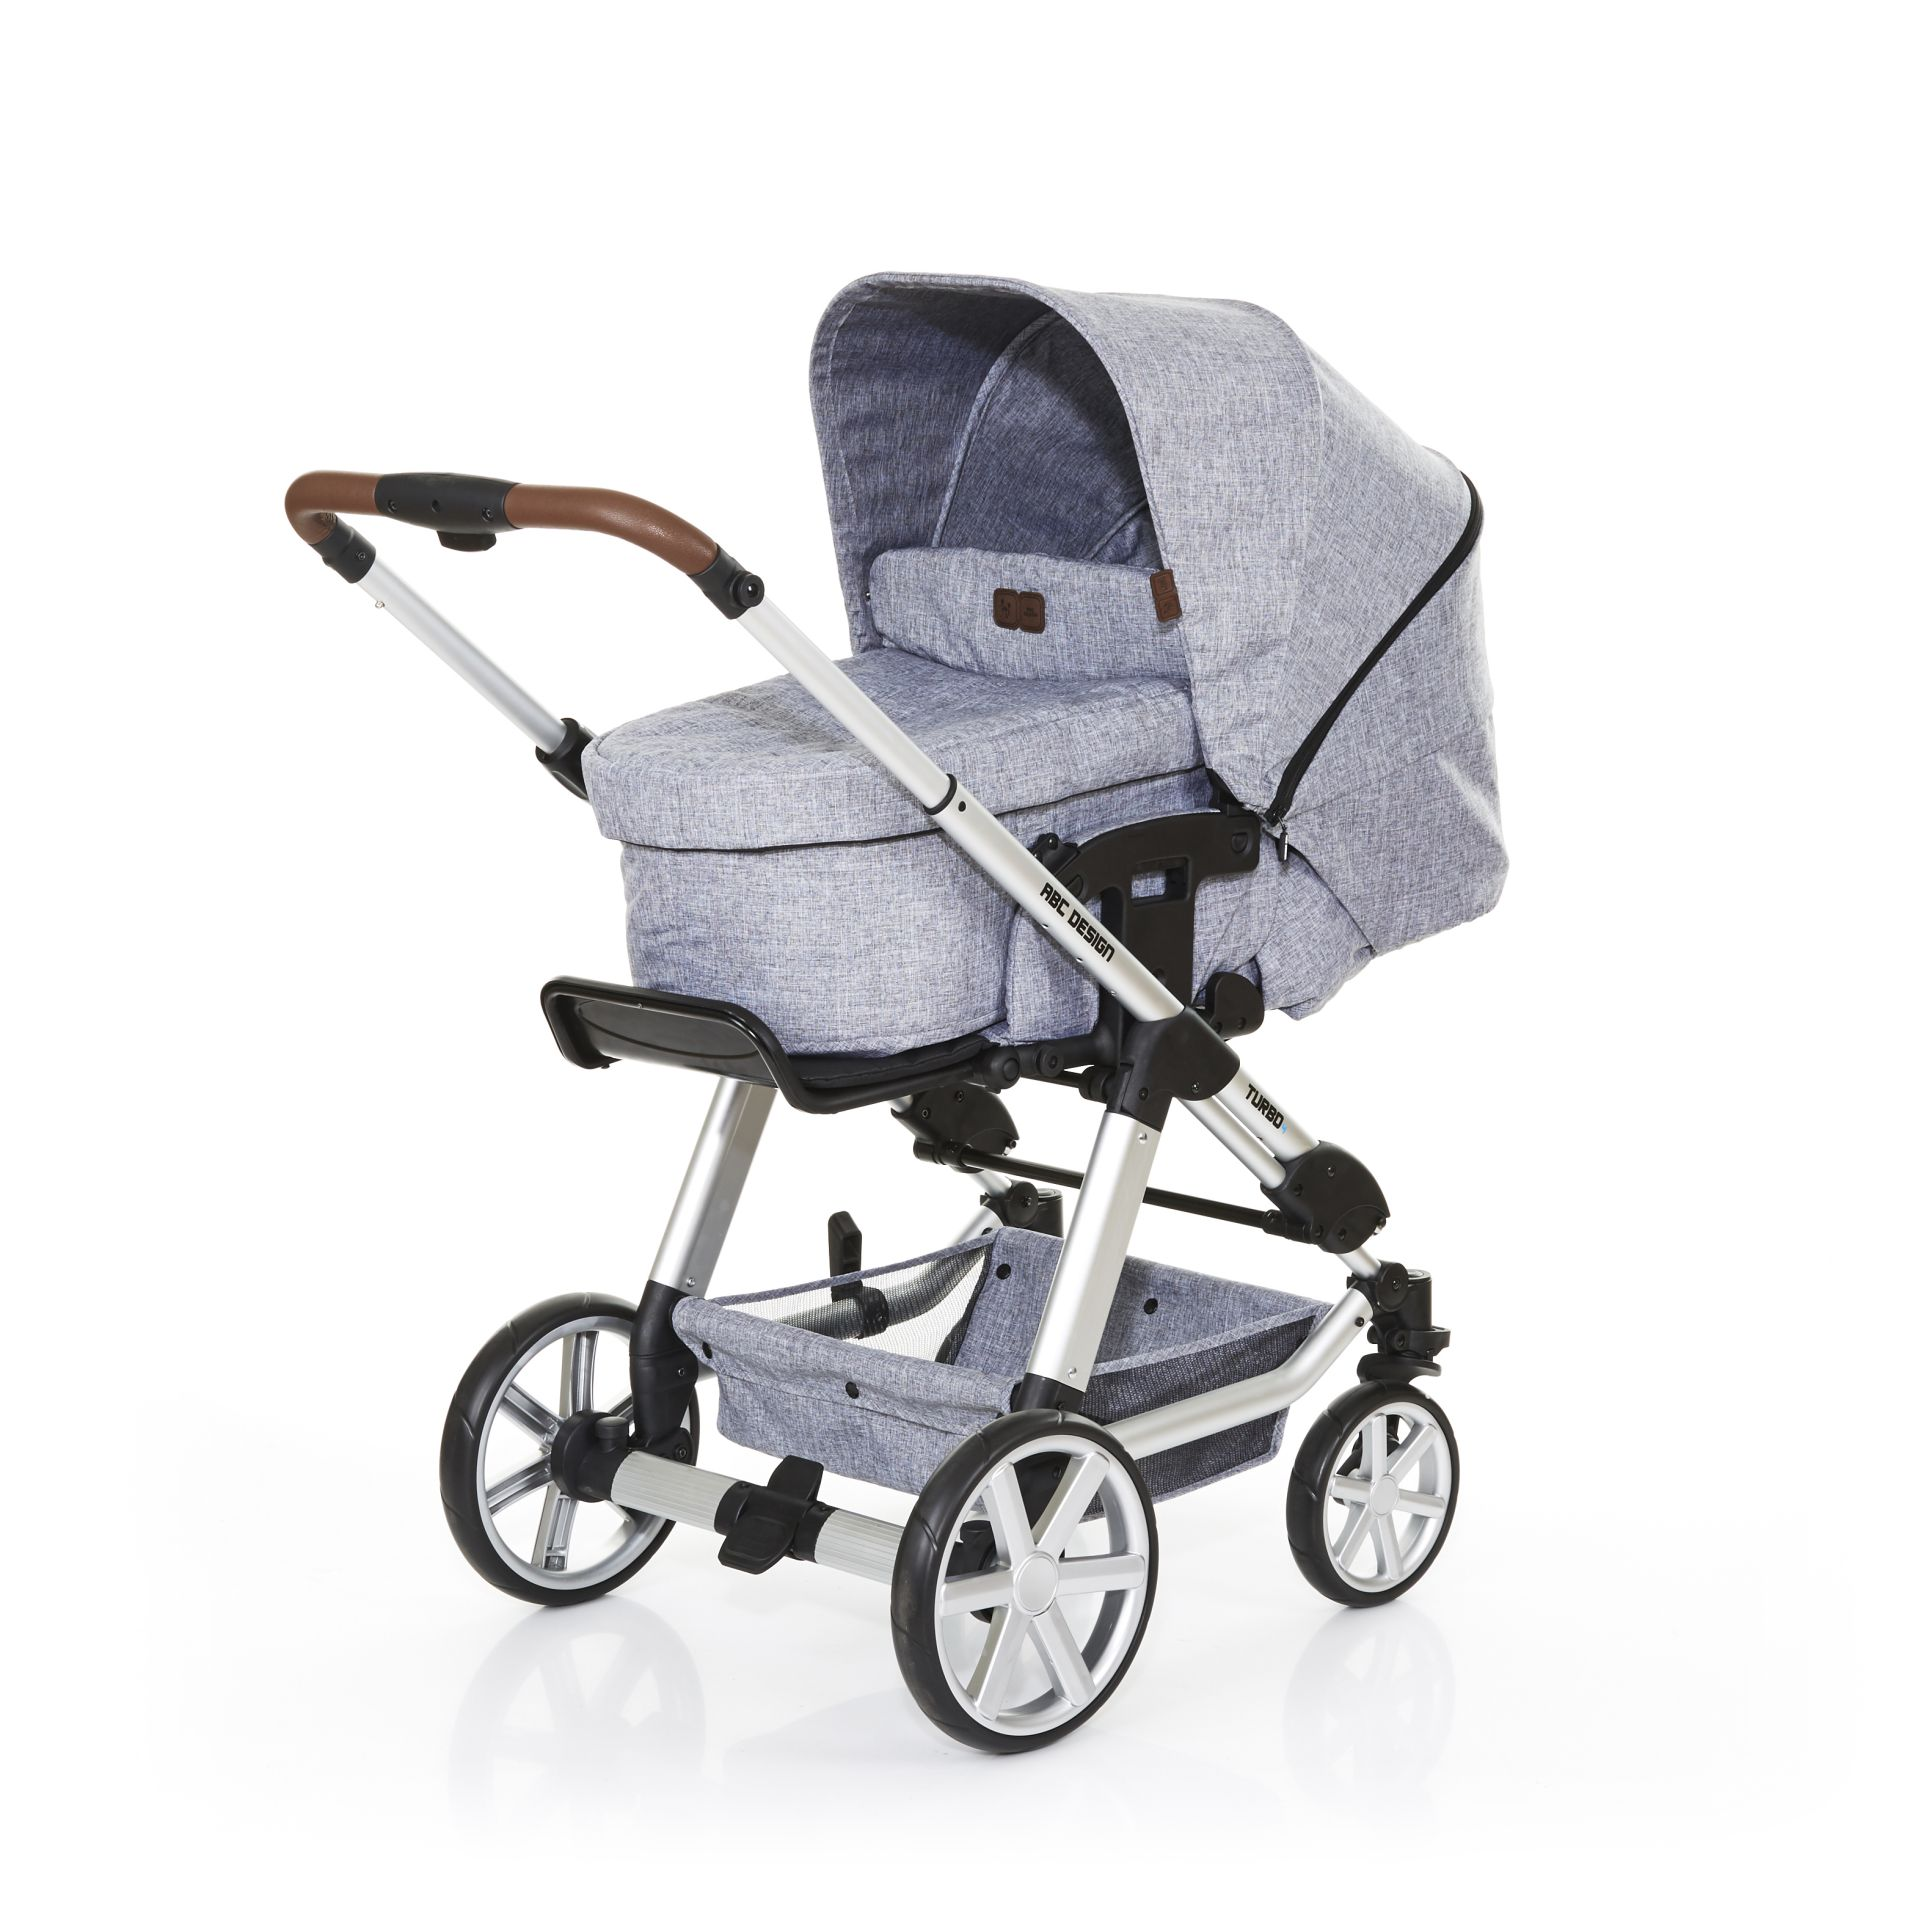 Buy Stroller Price How Much Roma Tomato